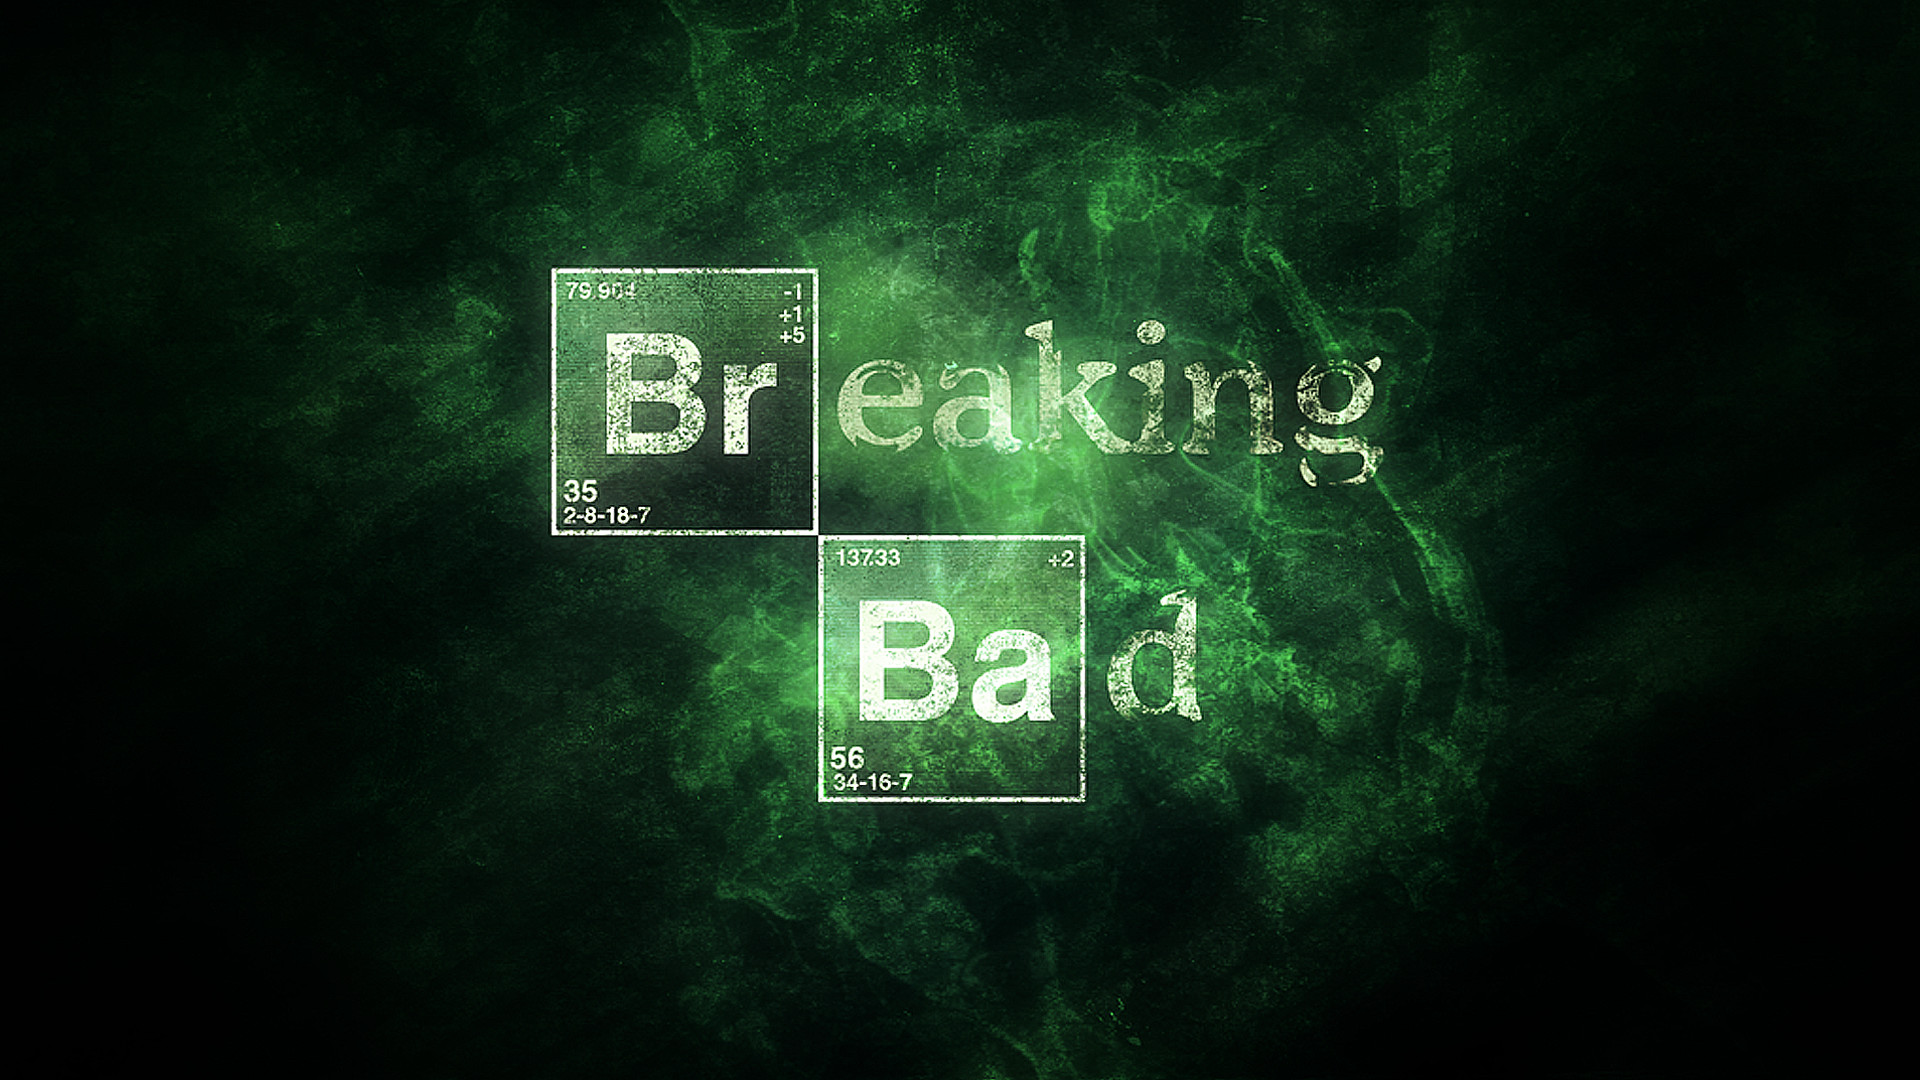 Cool Quote Wallpapers Hd 1920x1080 Breaking Bad Wallpaper 76 Images